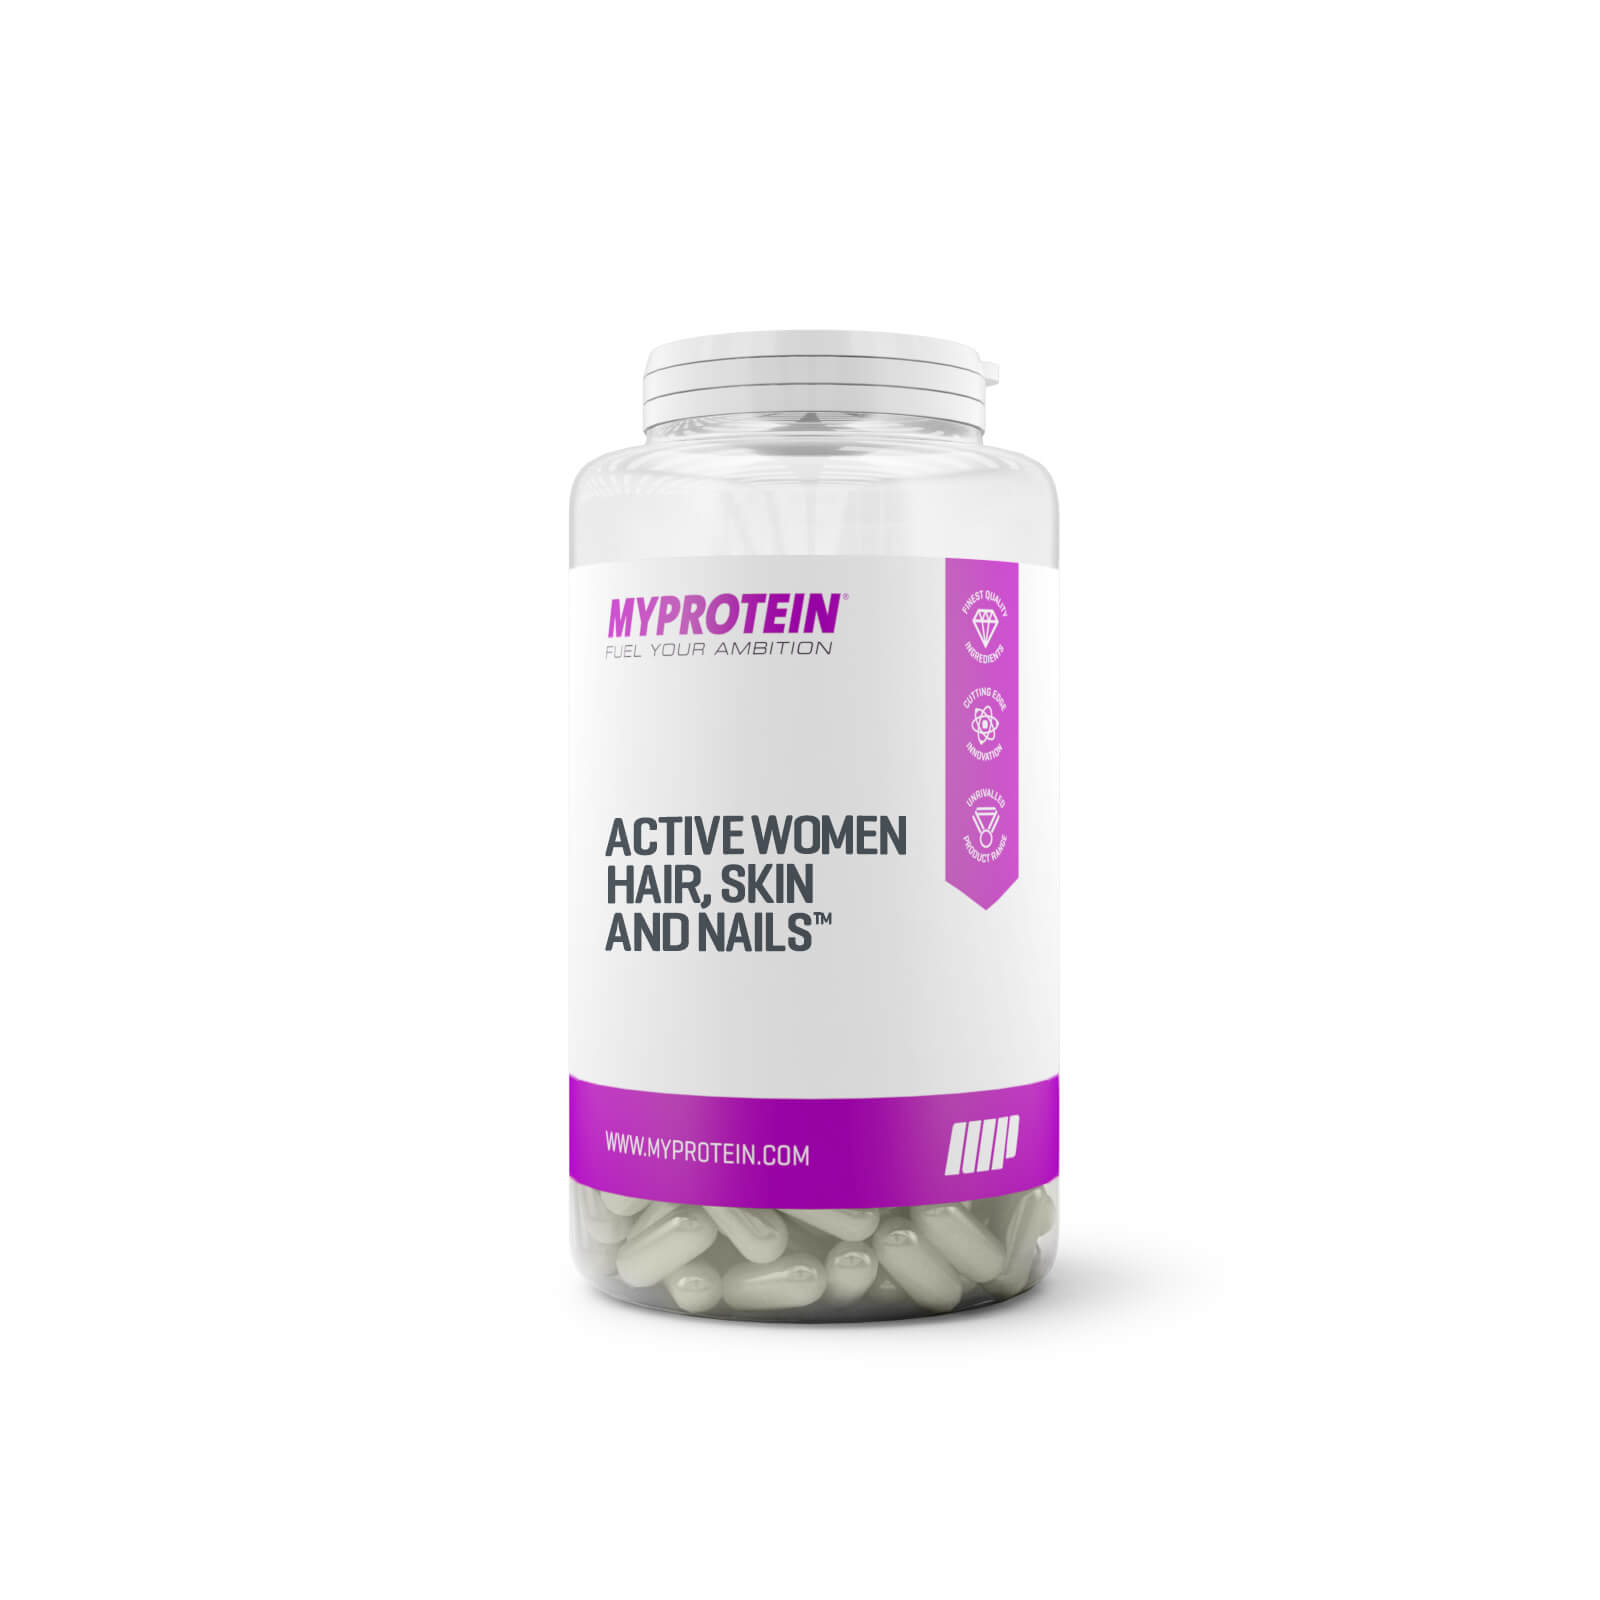 Active Women Hair, Skin and Nails (Vegan) - 30 Capsules